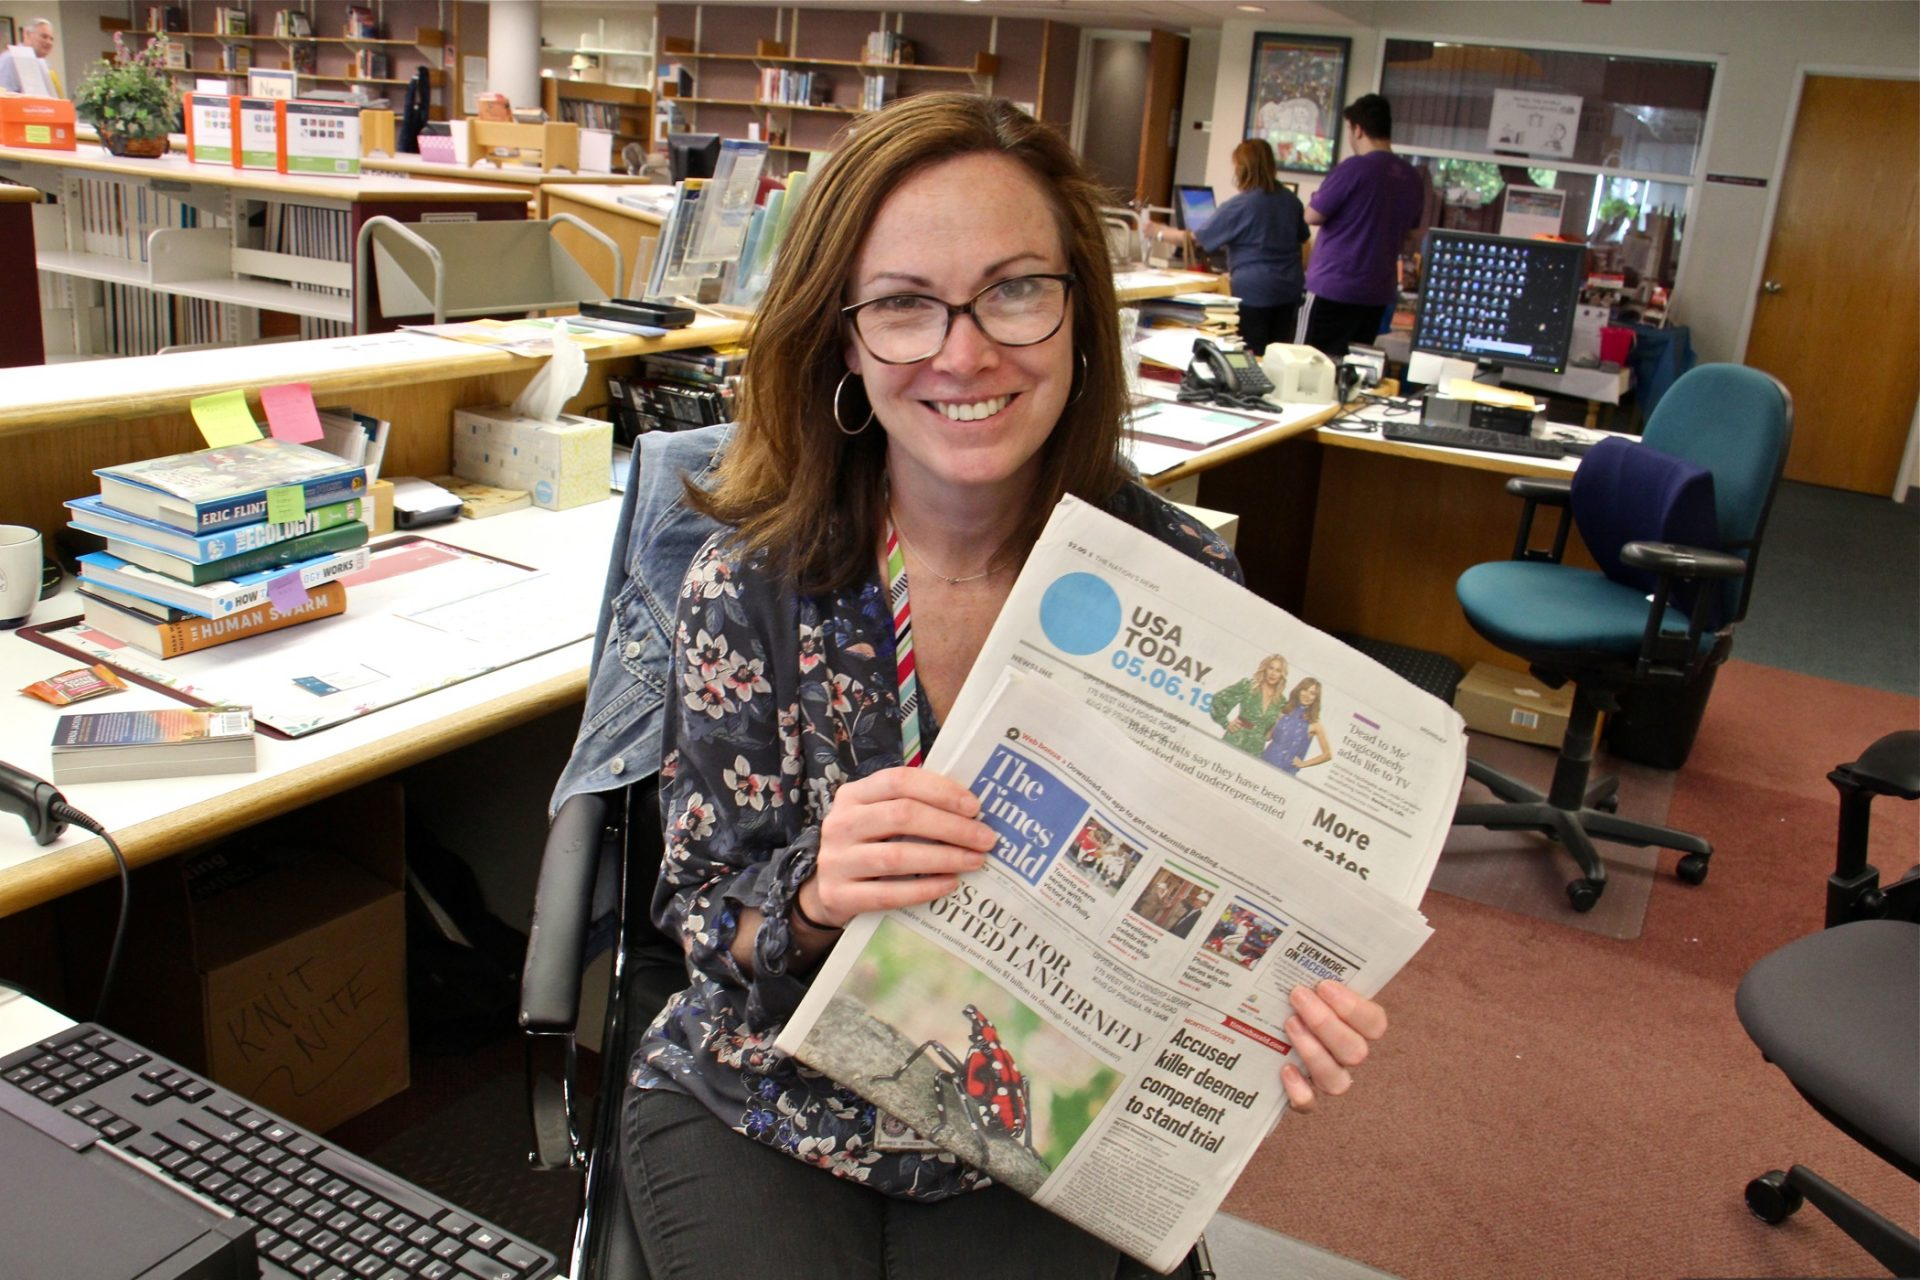 In Philly suburbs, readers see more 'ghost newspapers' as hedge